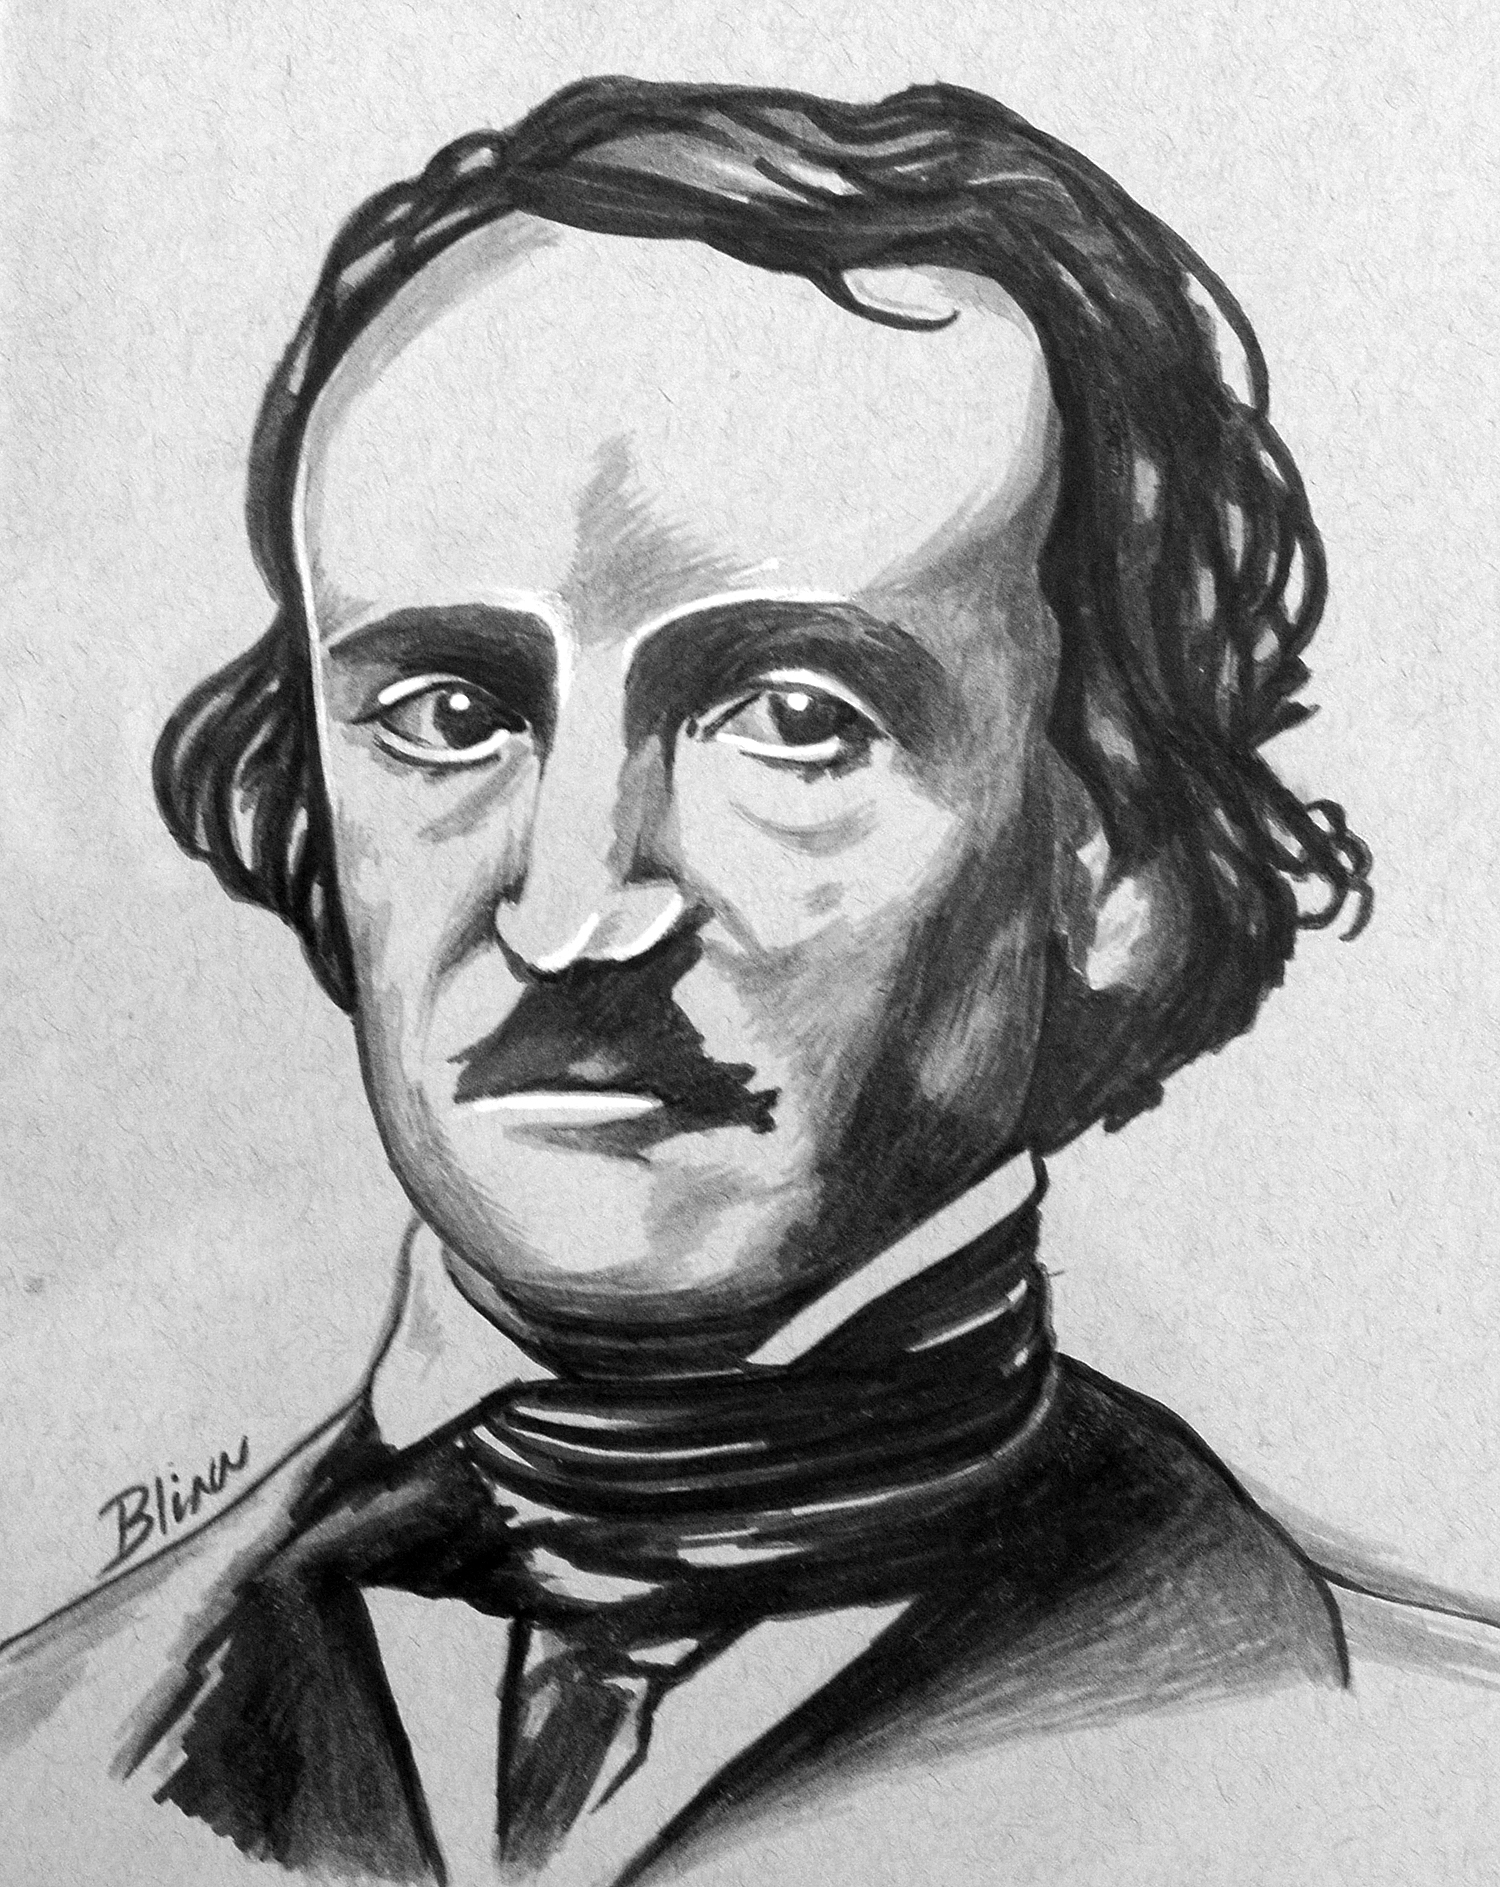 Tragedy as muse: With art and readings An Evening of Edgar Allan Poe celebrates dark  legacy